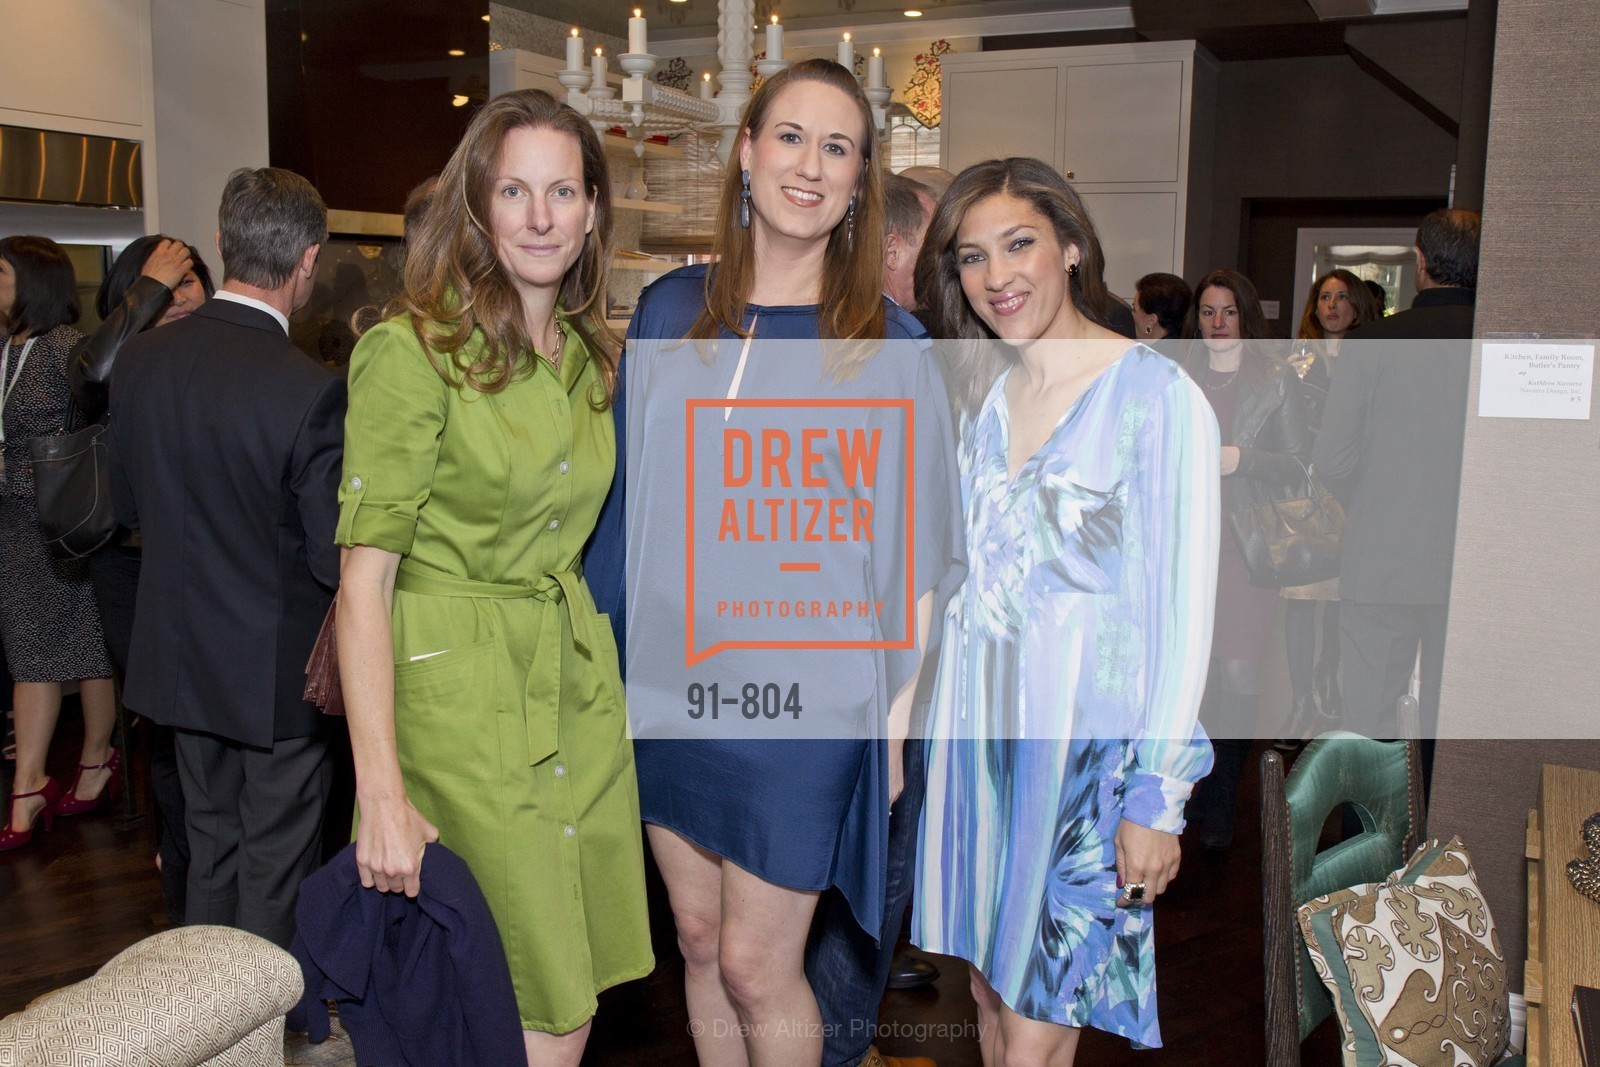 Justine Sears, Kelly Hohla, Jaimie Belew, San Francisco Decorator Showcase Opening Night Party, US, April 25th, 2015,Drew Altizer, Drew Altizer Photography, full-service agency, private events, San Francisco photographer, photographer california